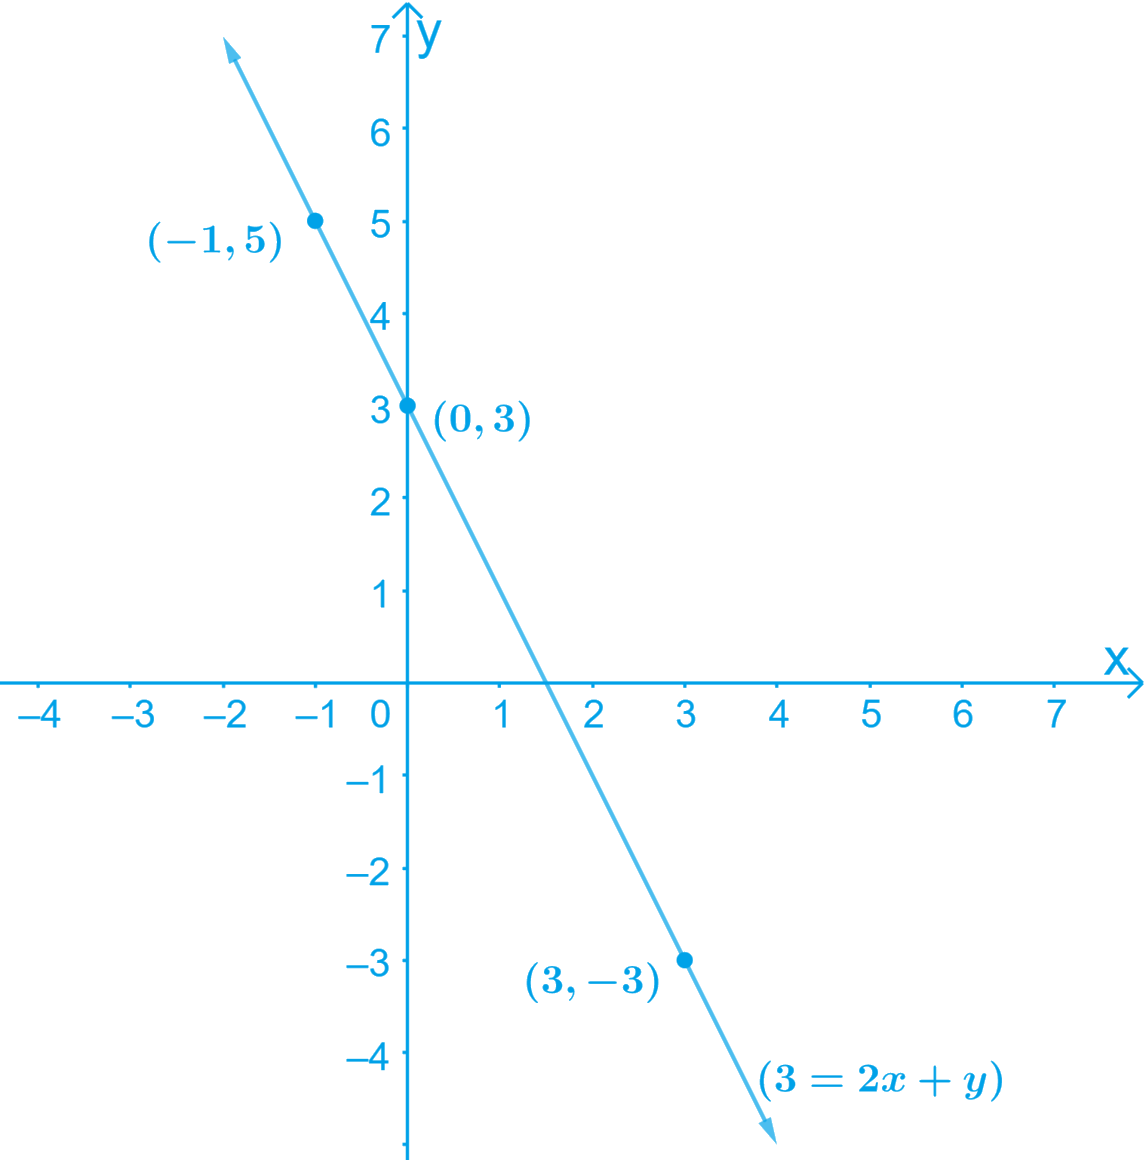 Draw the graph of each of the following linear equations in two variables: (i) x + y = 4 (ii) x - y = 2 (iii) y = 3x (iv) 3 = 2x + y